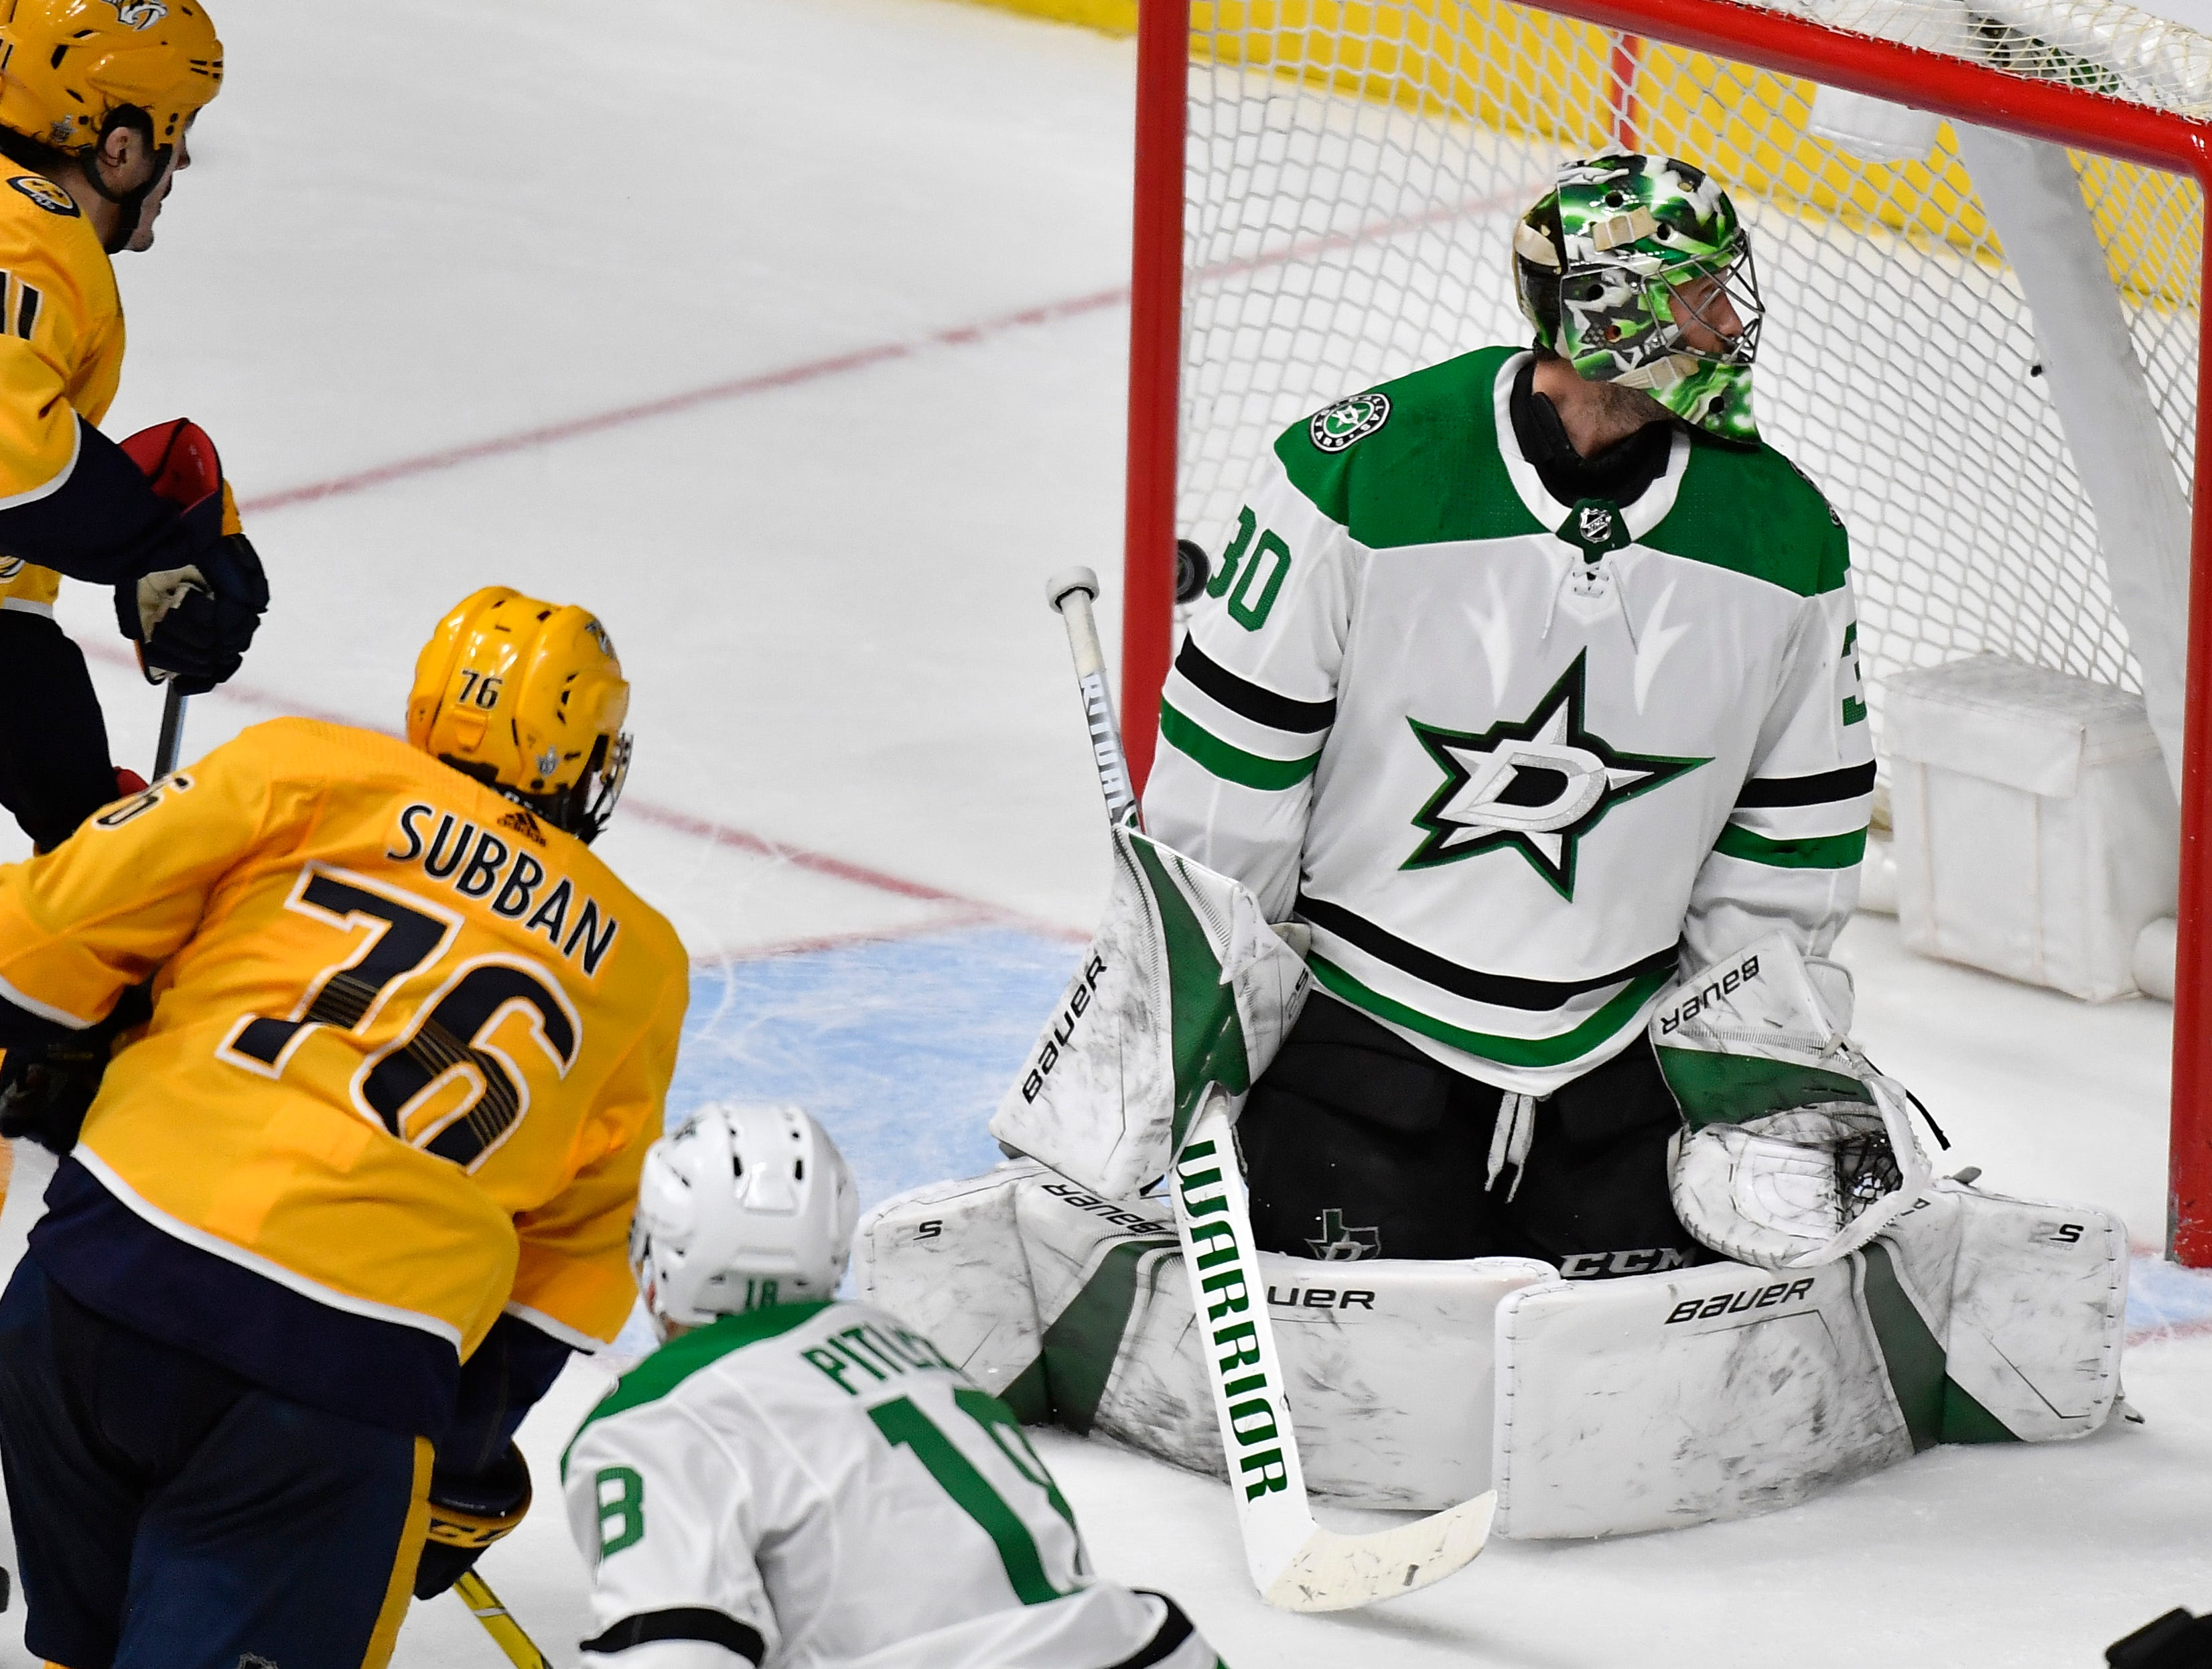 Nashville Predators defenseman P.K. Subban (76) scores on Dallas Stars goaltender Ben Bishop (30) during the third period of the divisional semifinal game at Bridgestone Arena in Nashville, Tenn., Wednesday, April 10, 2019.